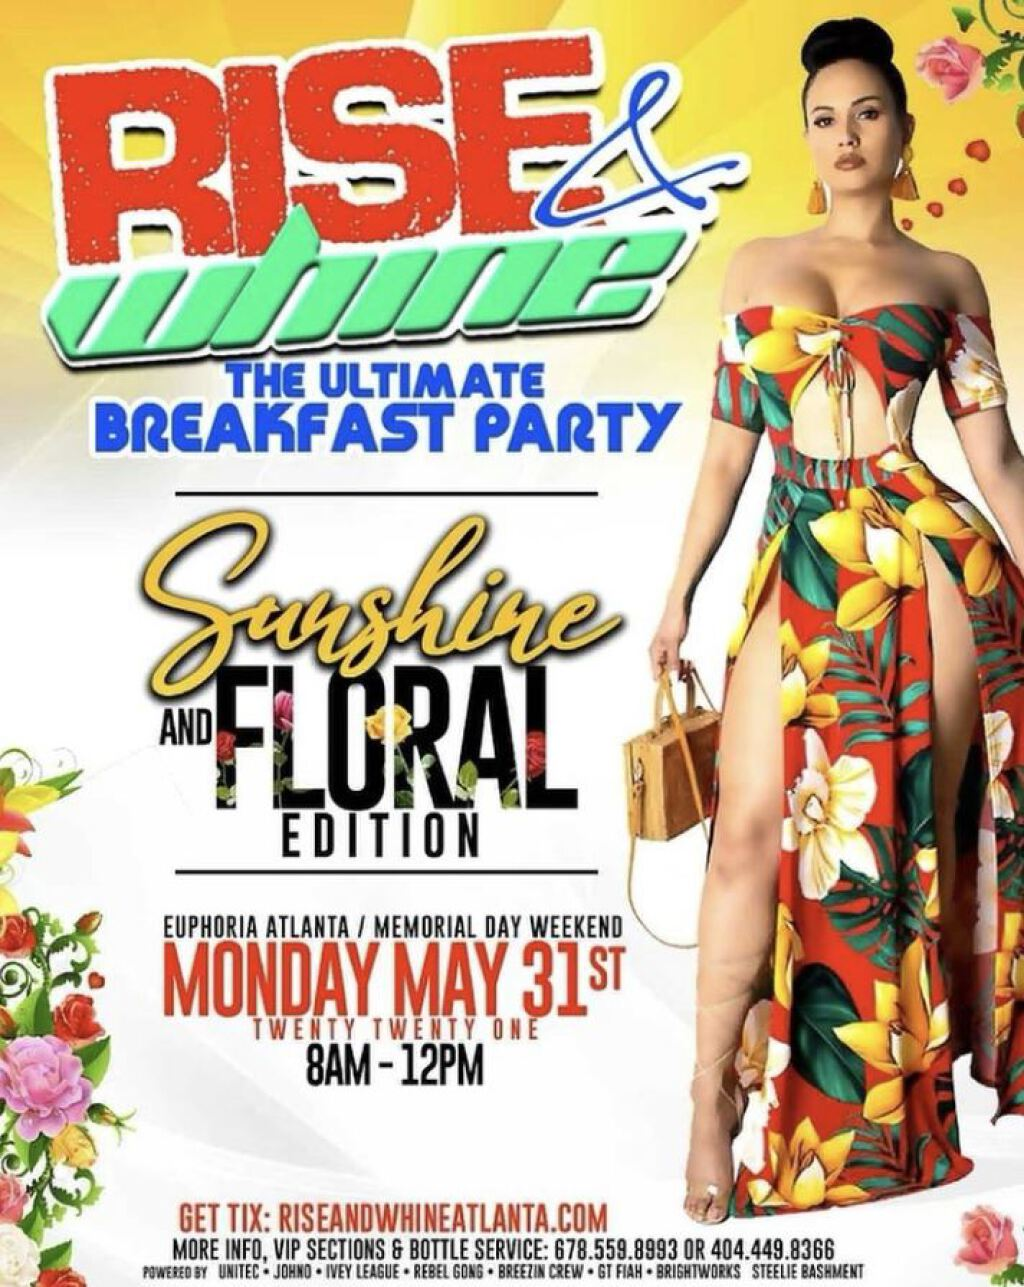 Rise & Whine Breakfast Party flyer or graphic.